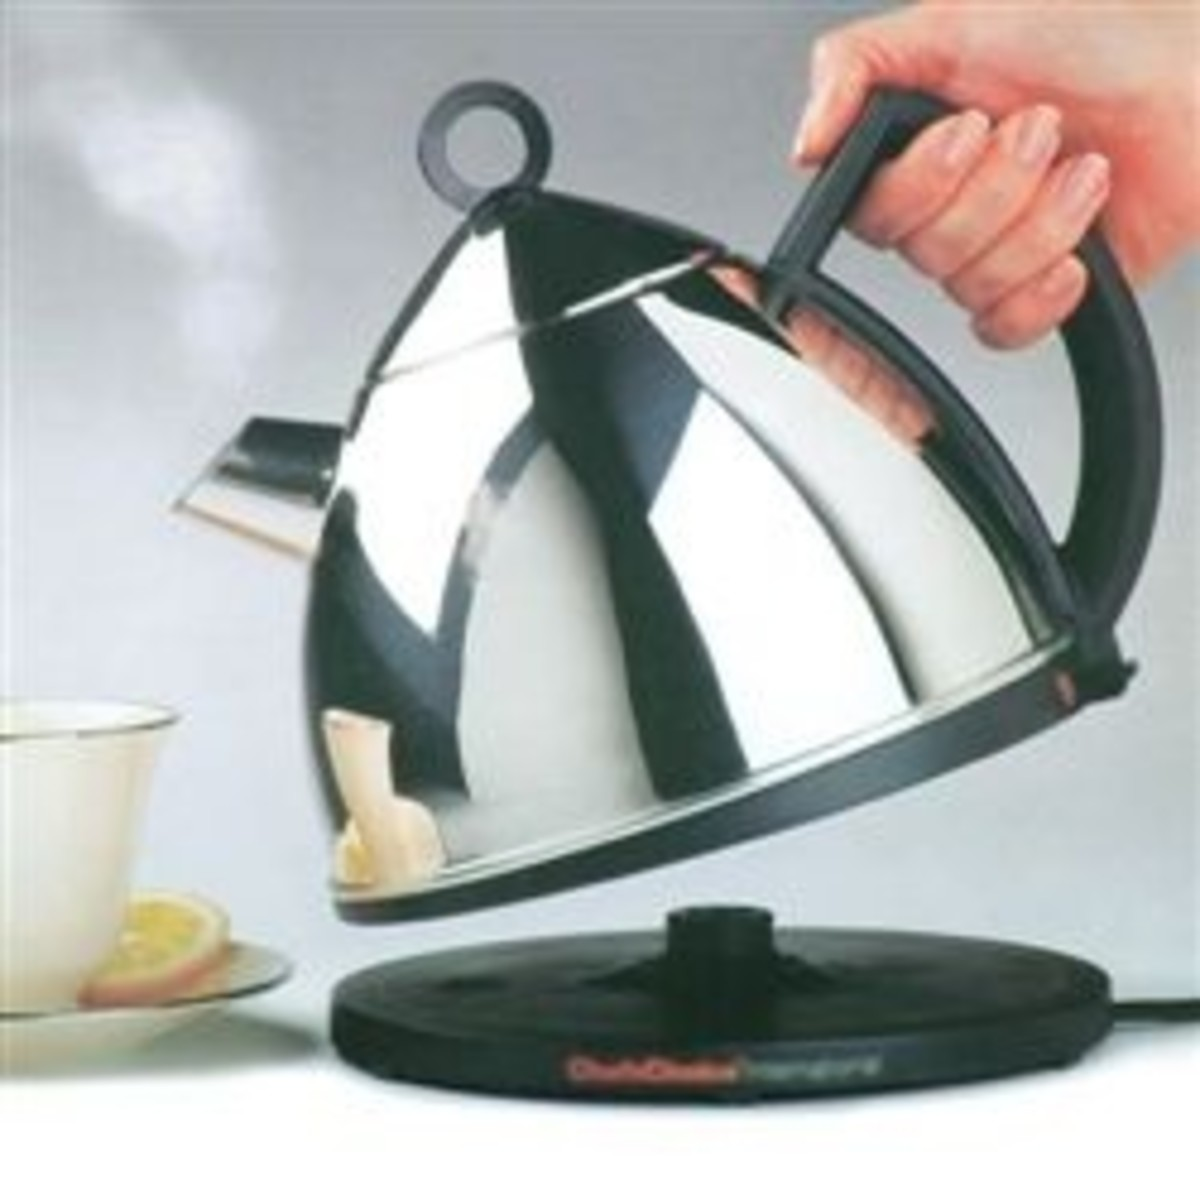 Would You Prefer an Electric Tea Kettle with Cord or Without Cord?